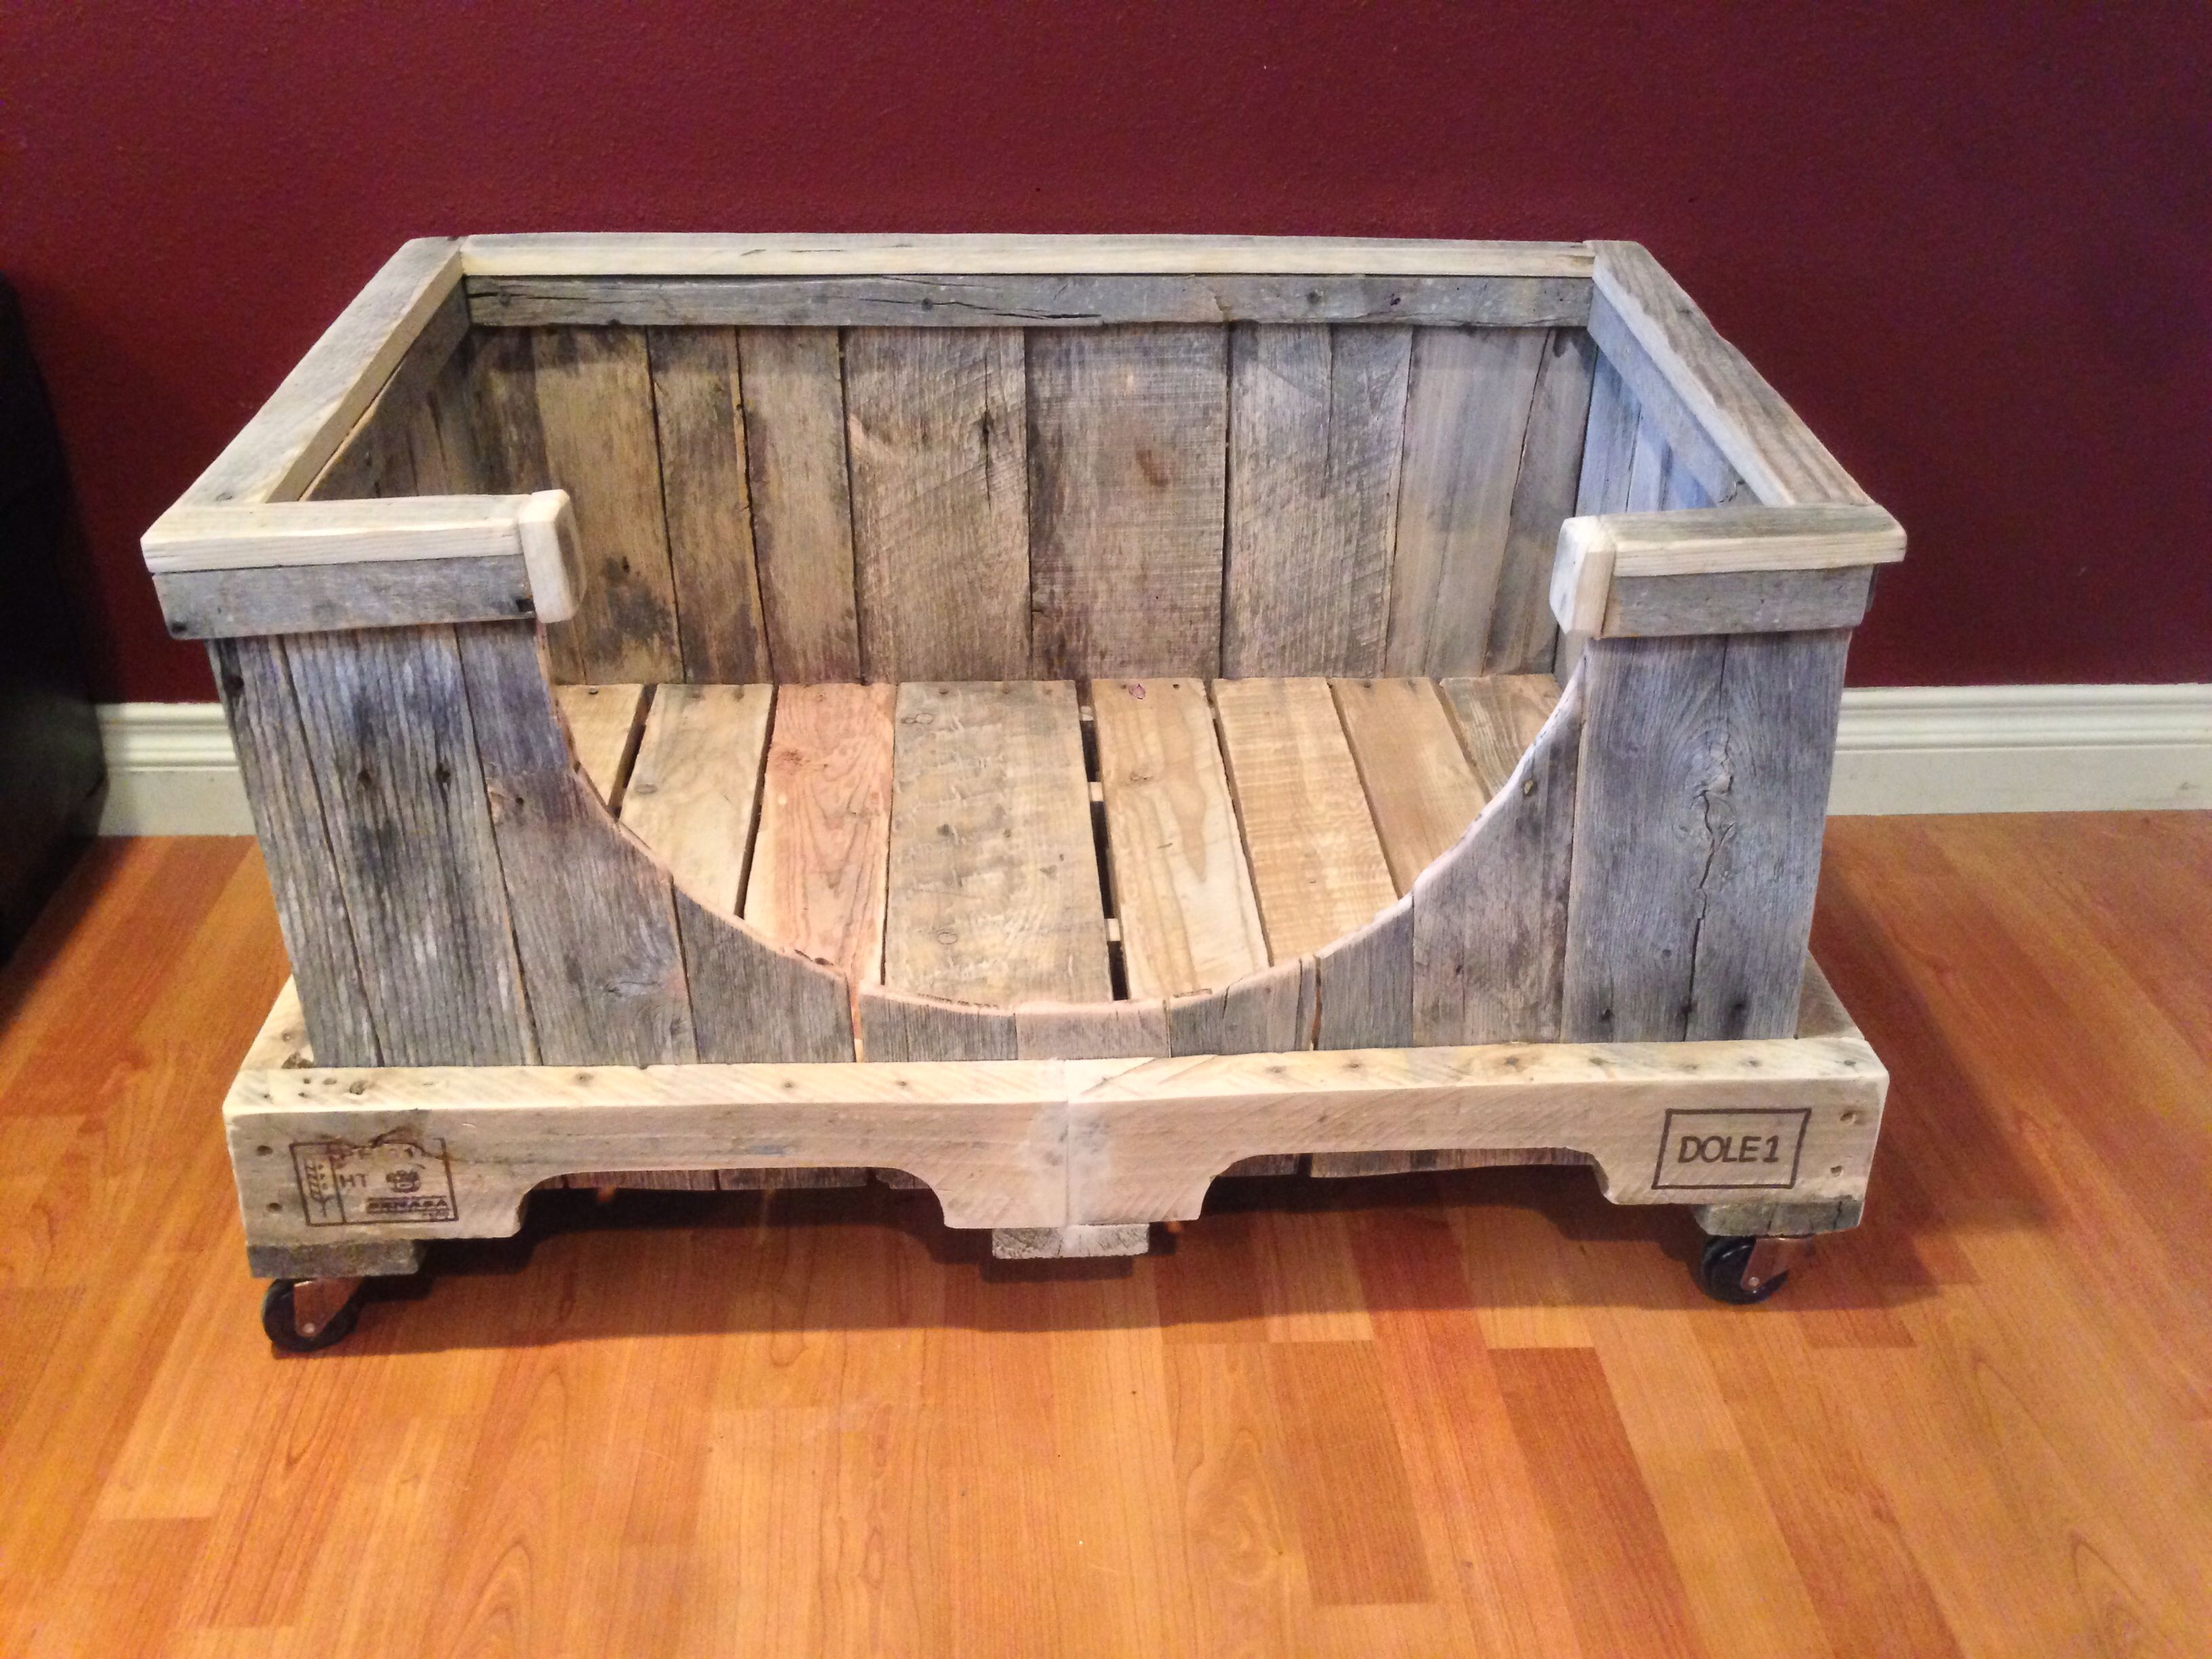 17 best ideas about wood dog bed on pinterest dog beds cool dog beds and dog things